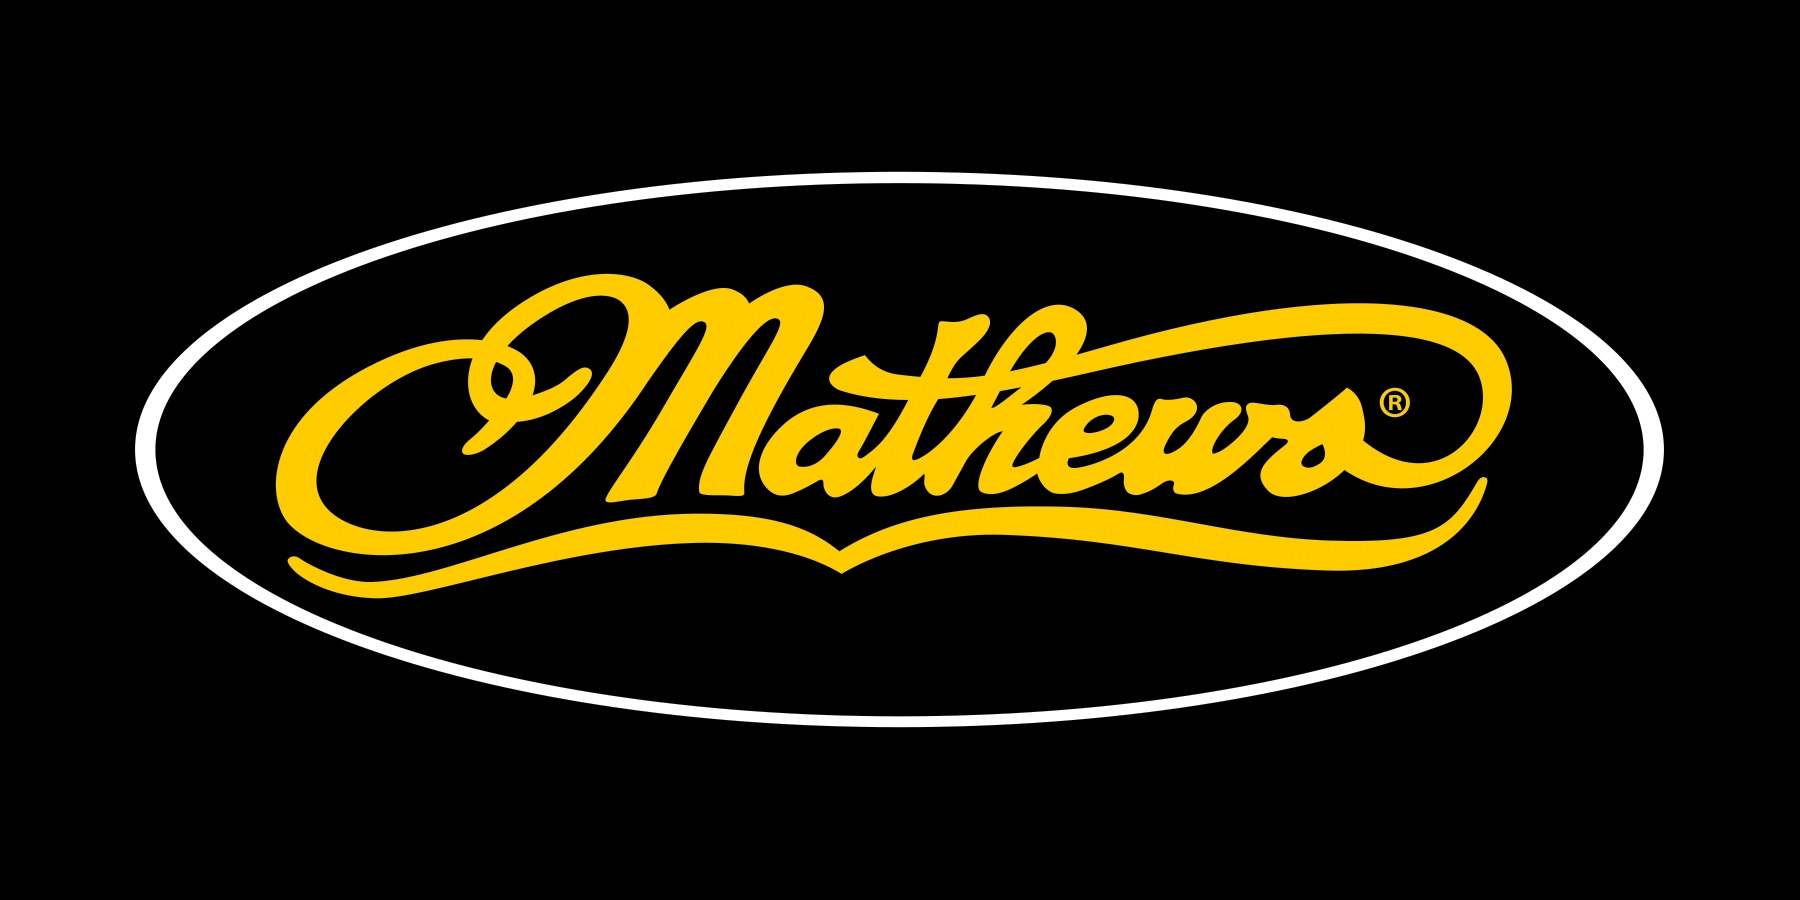 Mathews Bows